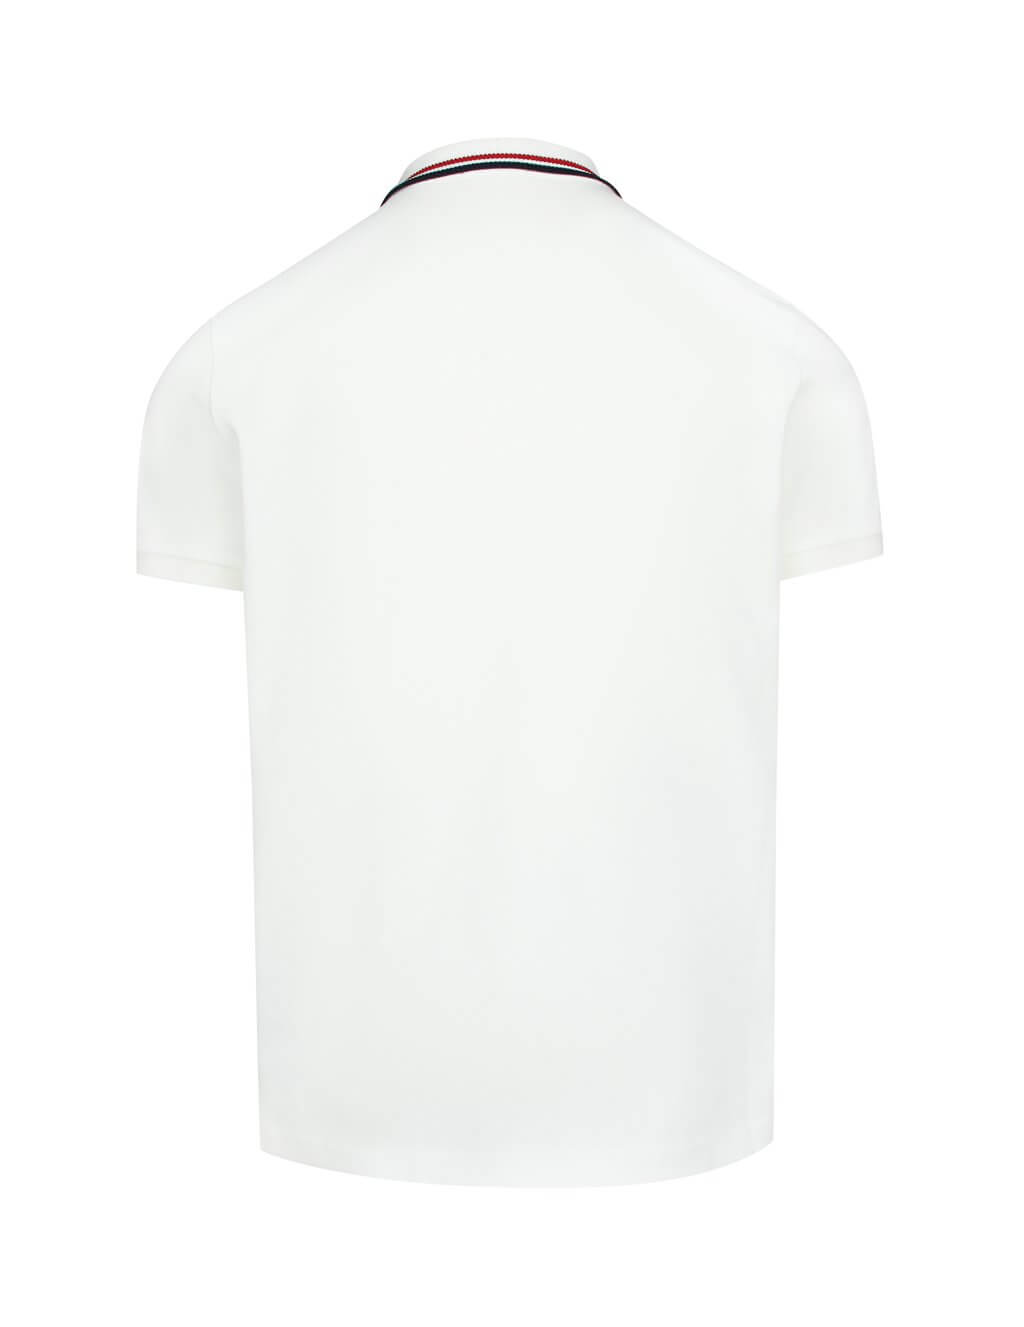 Moncler Men's Giulio Fashion White Tricolour Polo Shirt 830290084673004